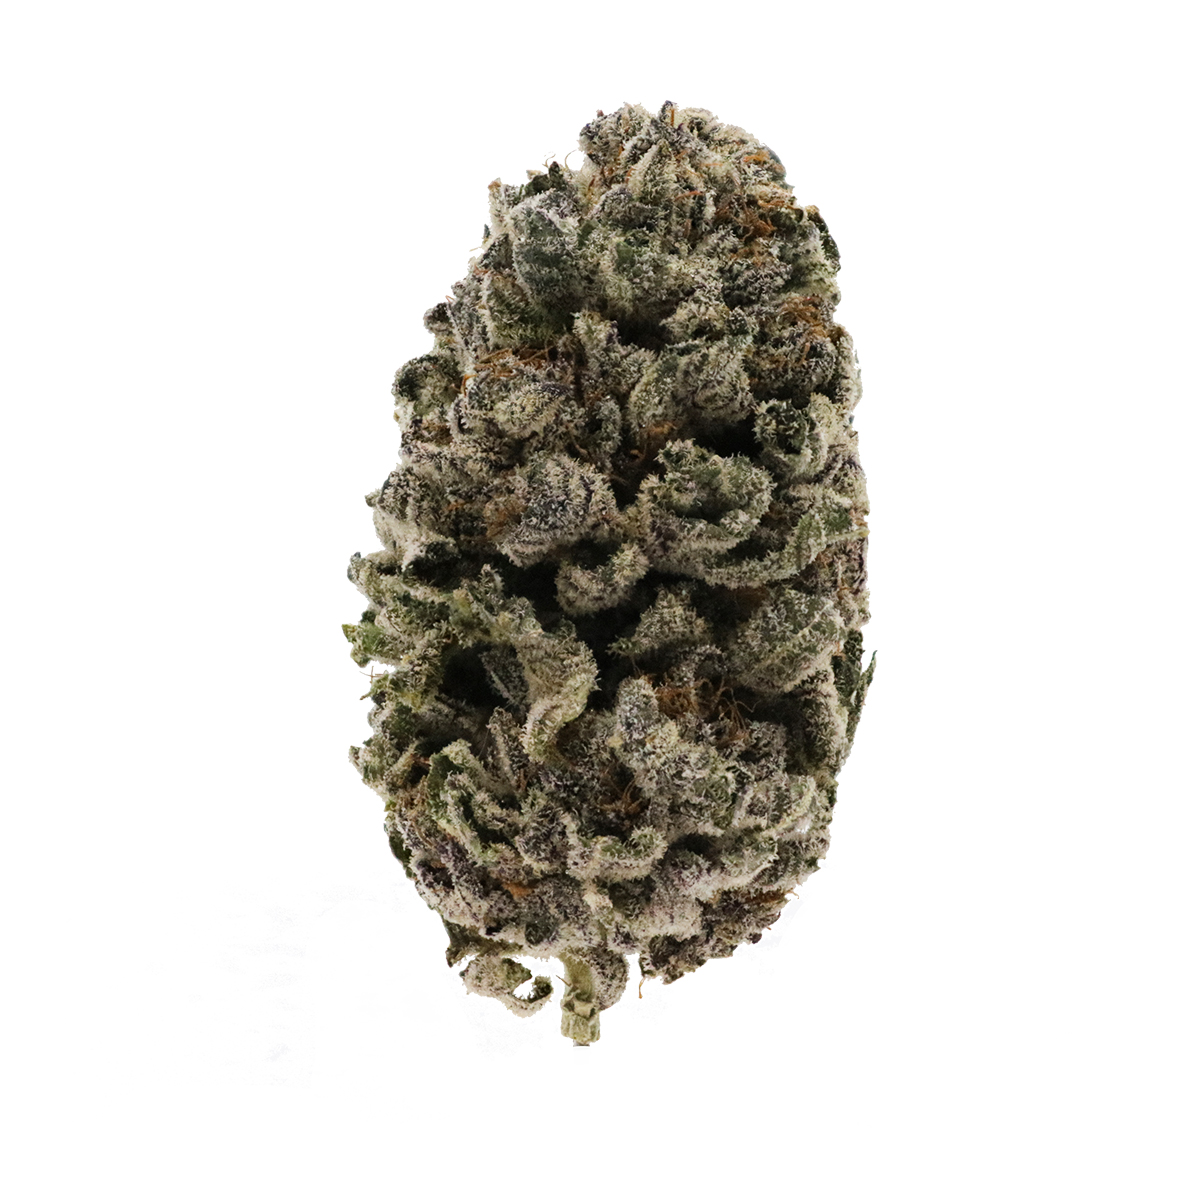 Darth Vader OG by Buy Weed 247 - Image © 2020 Buy Weed 247. All Rights Reserved.